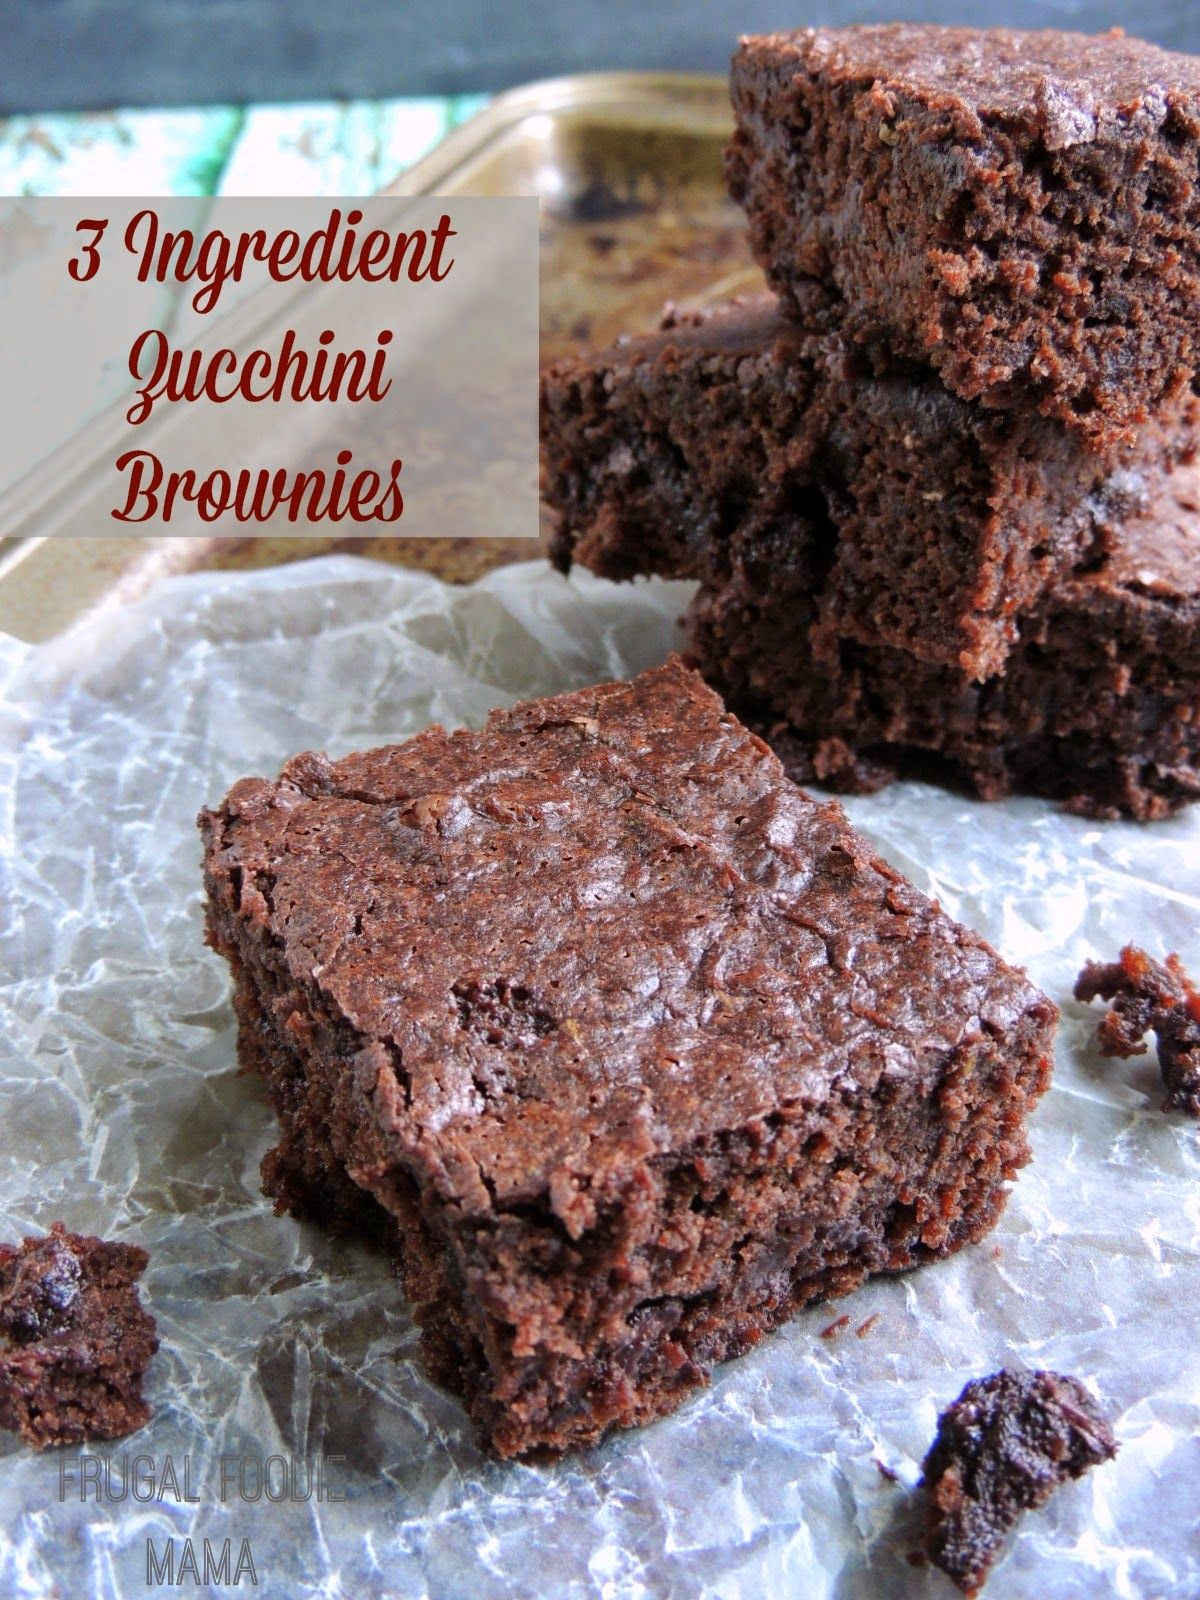 3 Ingredient Zucchini Brownies Recipe Zucchini Brownies